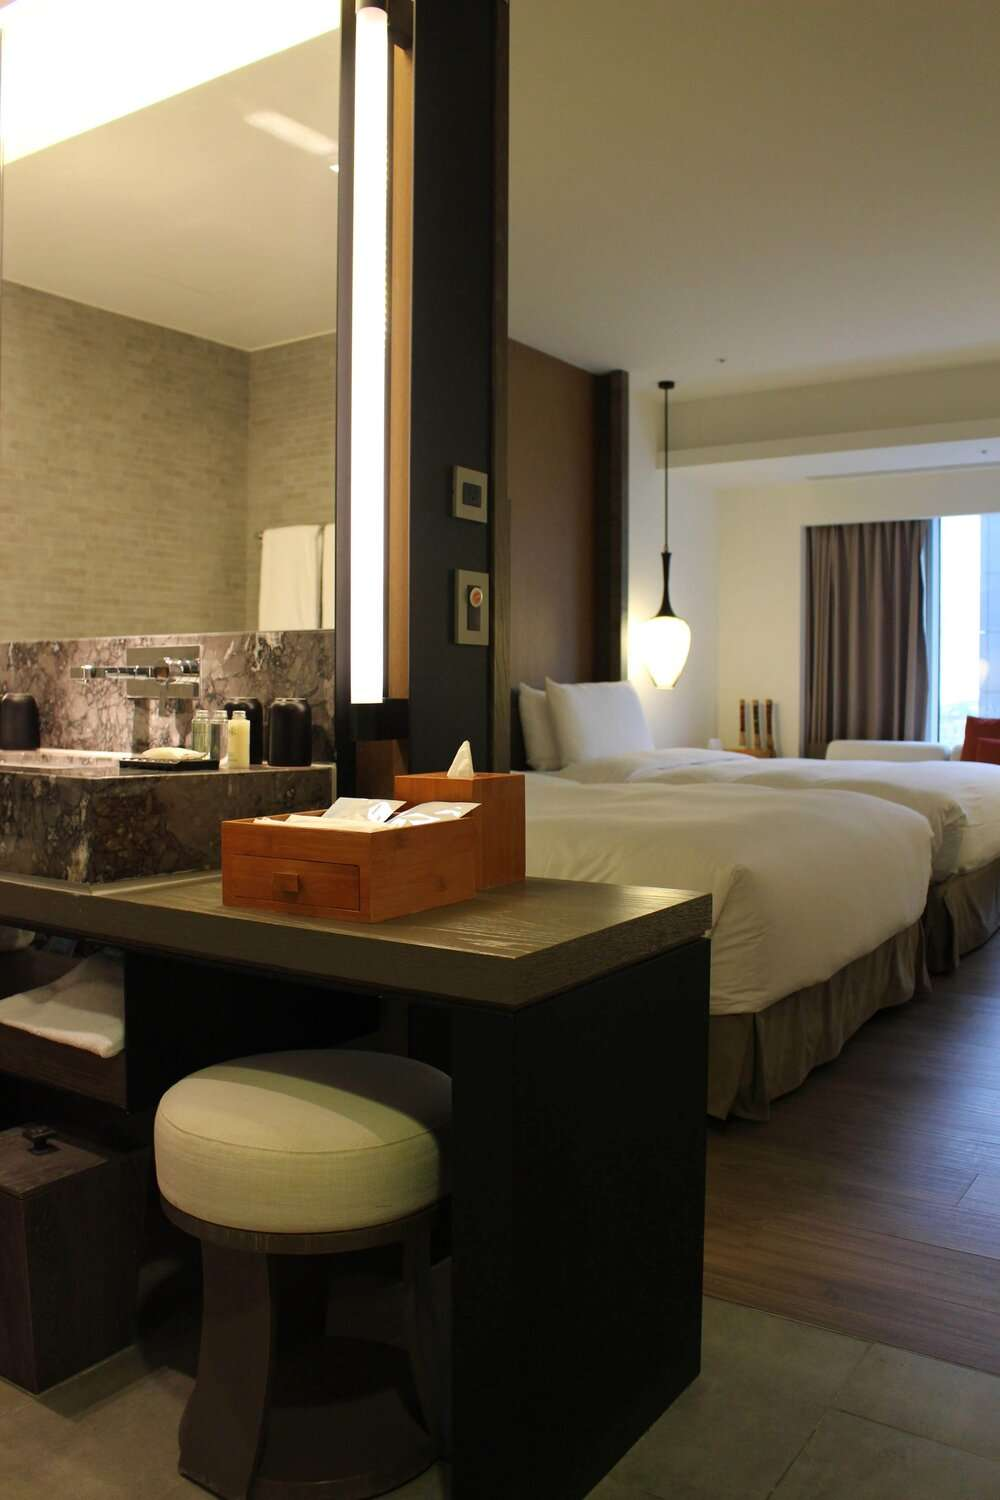 bedroom and bathroom suite at Silks Place Tainan